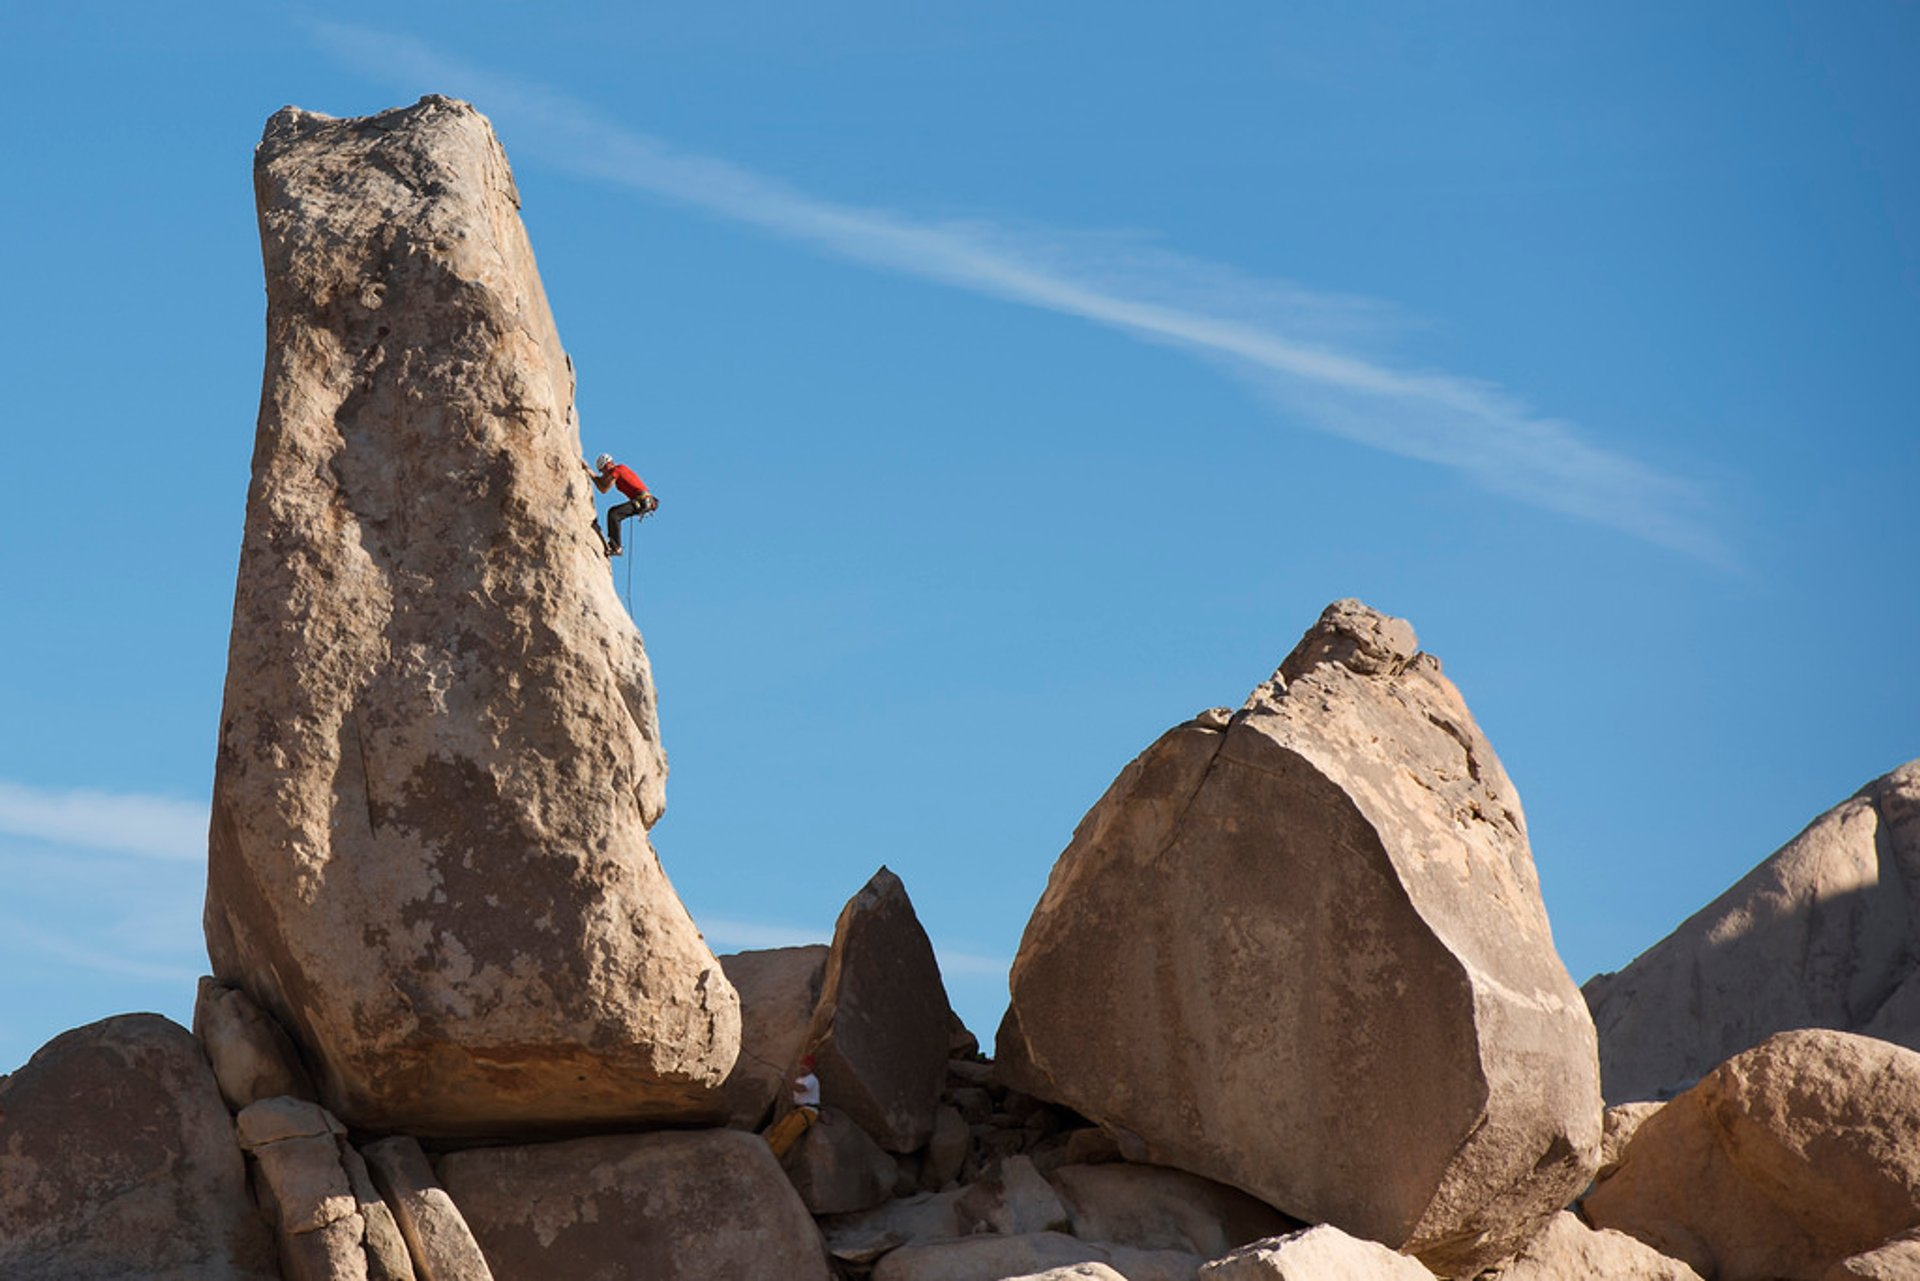 Climber at Headstone Rock 2020